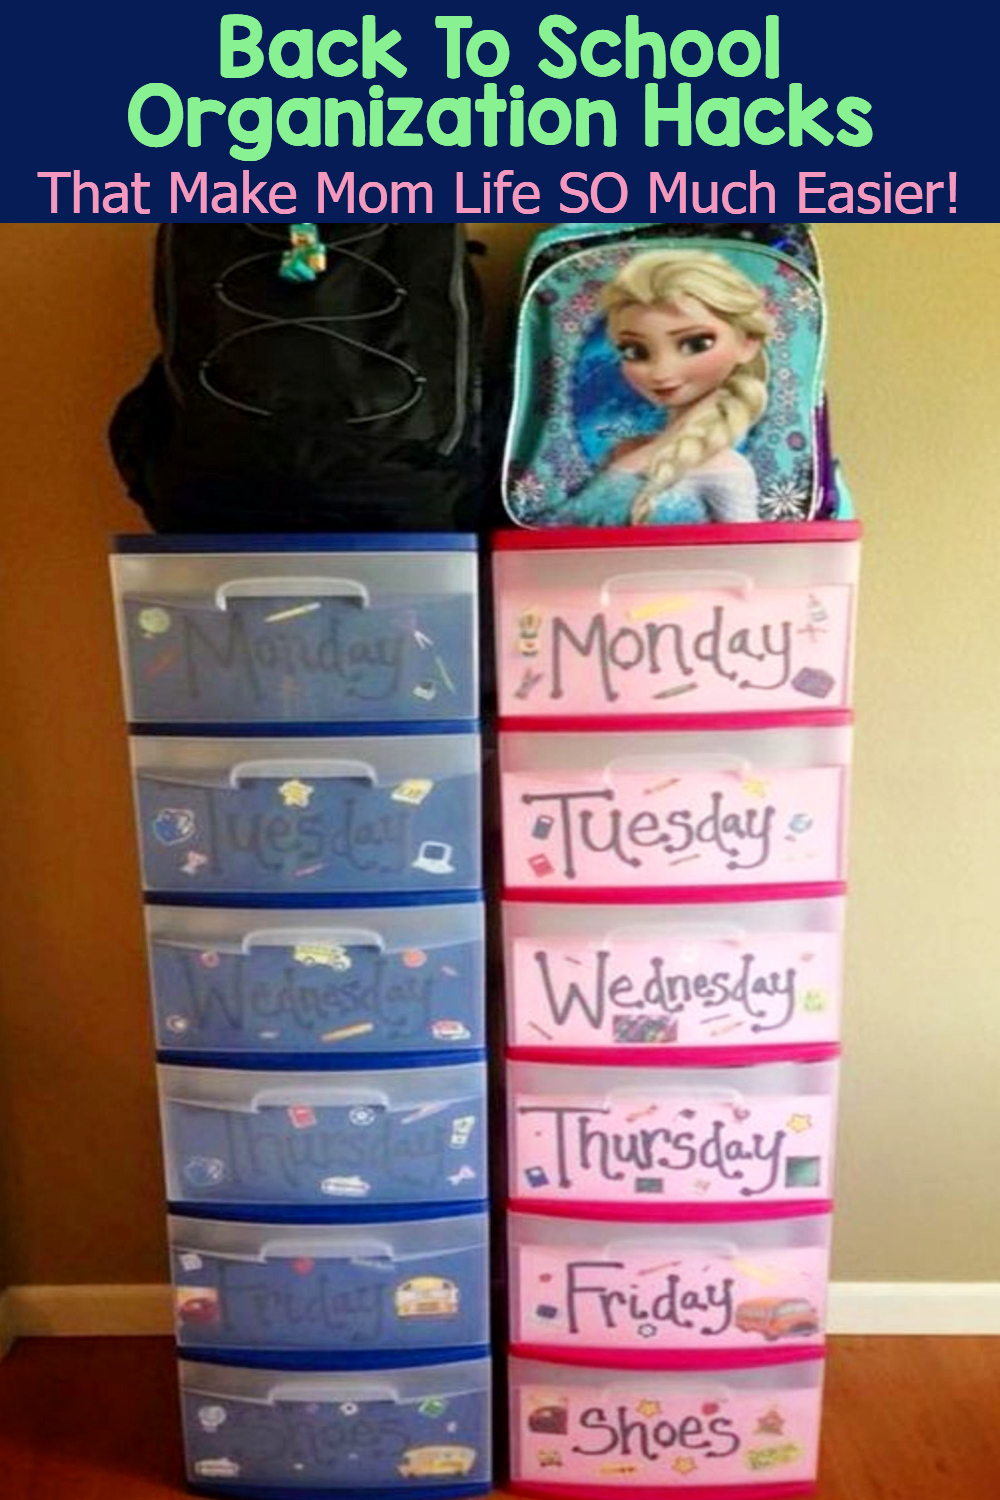 Simple Back To School Organization For Moms for getting organized at home with your kids morning routines and all year long - school year organization tips and ideas for  organized moms and for all parents to get organized this year and STAY organized WITHOUT feeling overwhelmed.